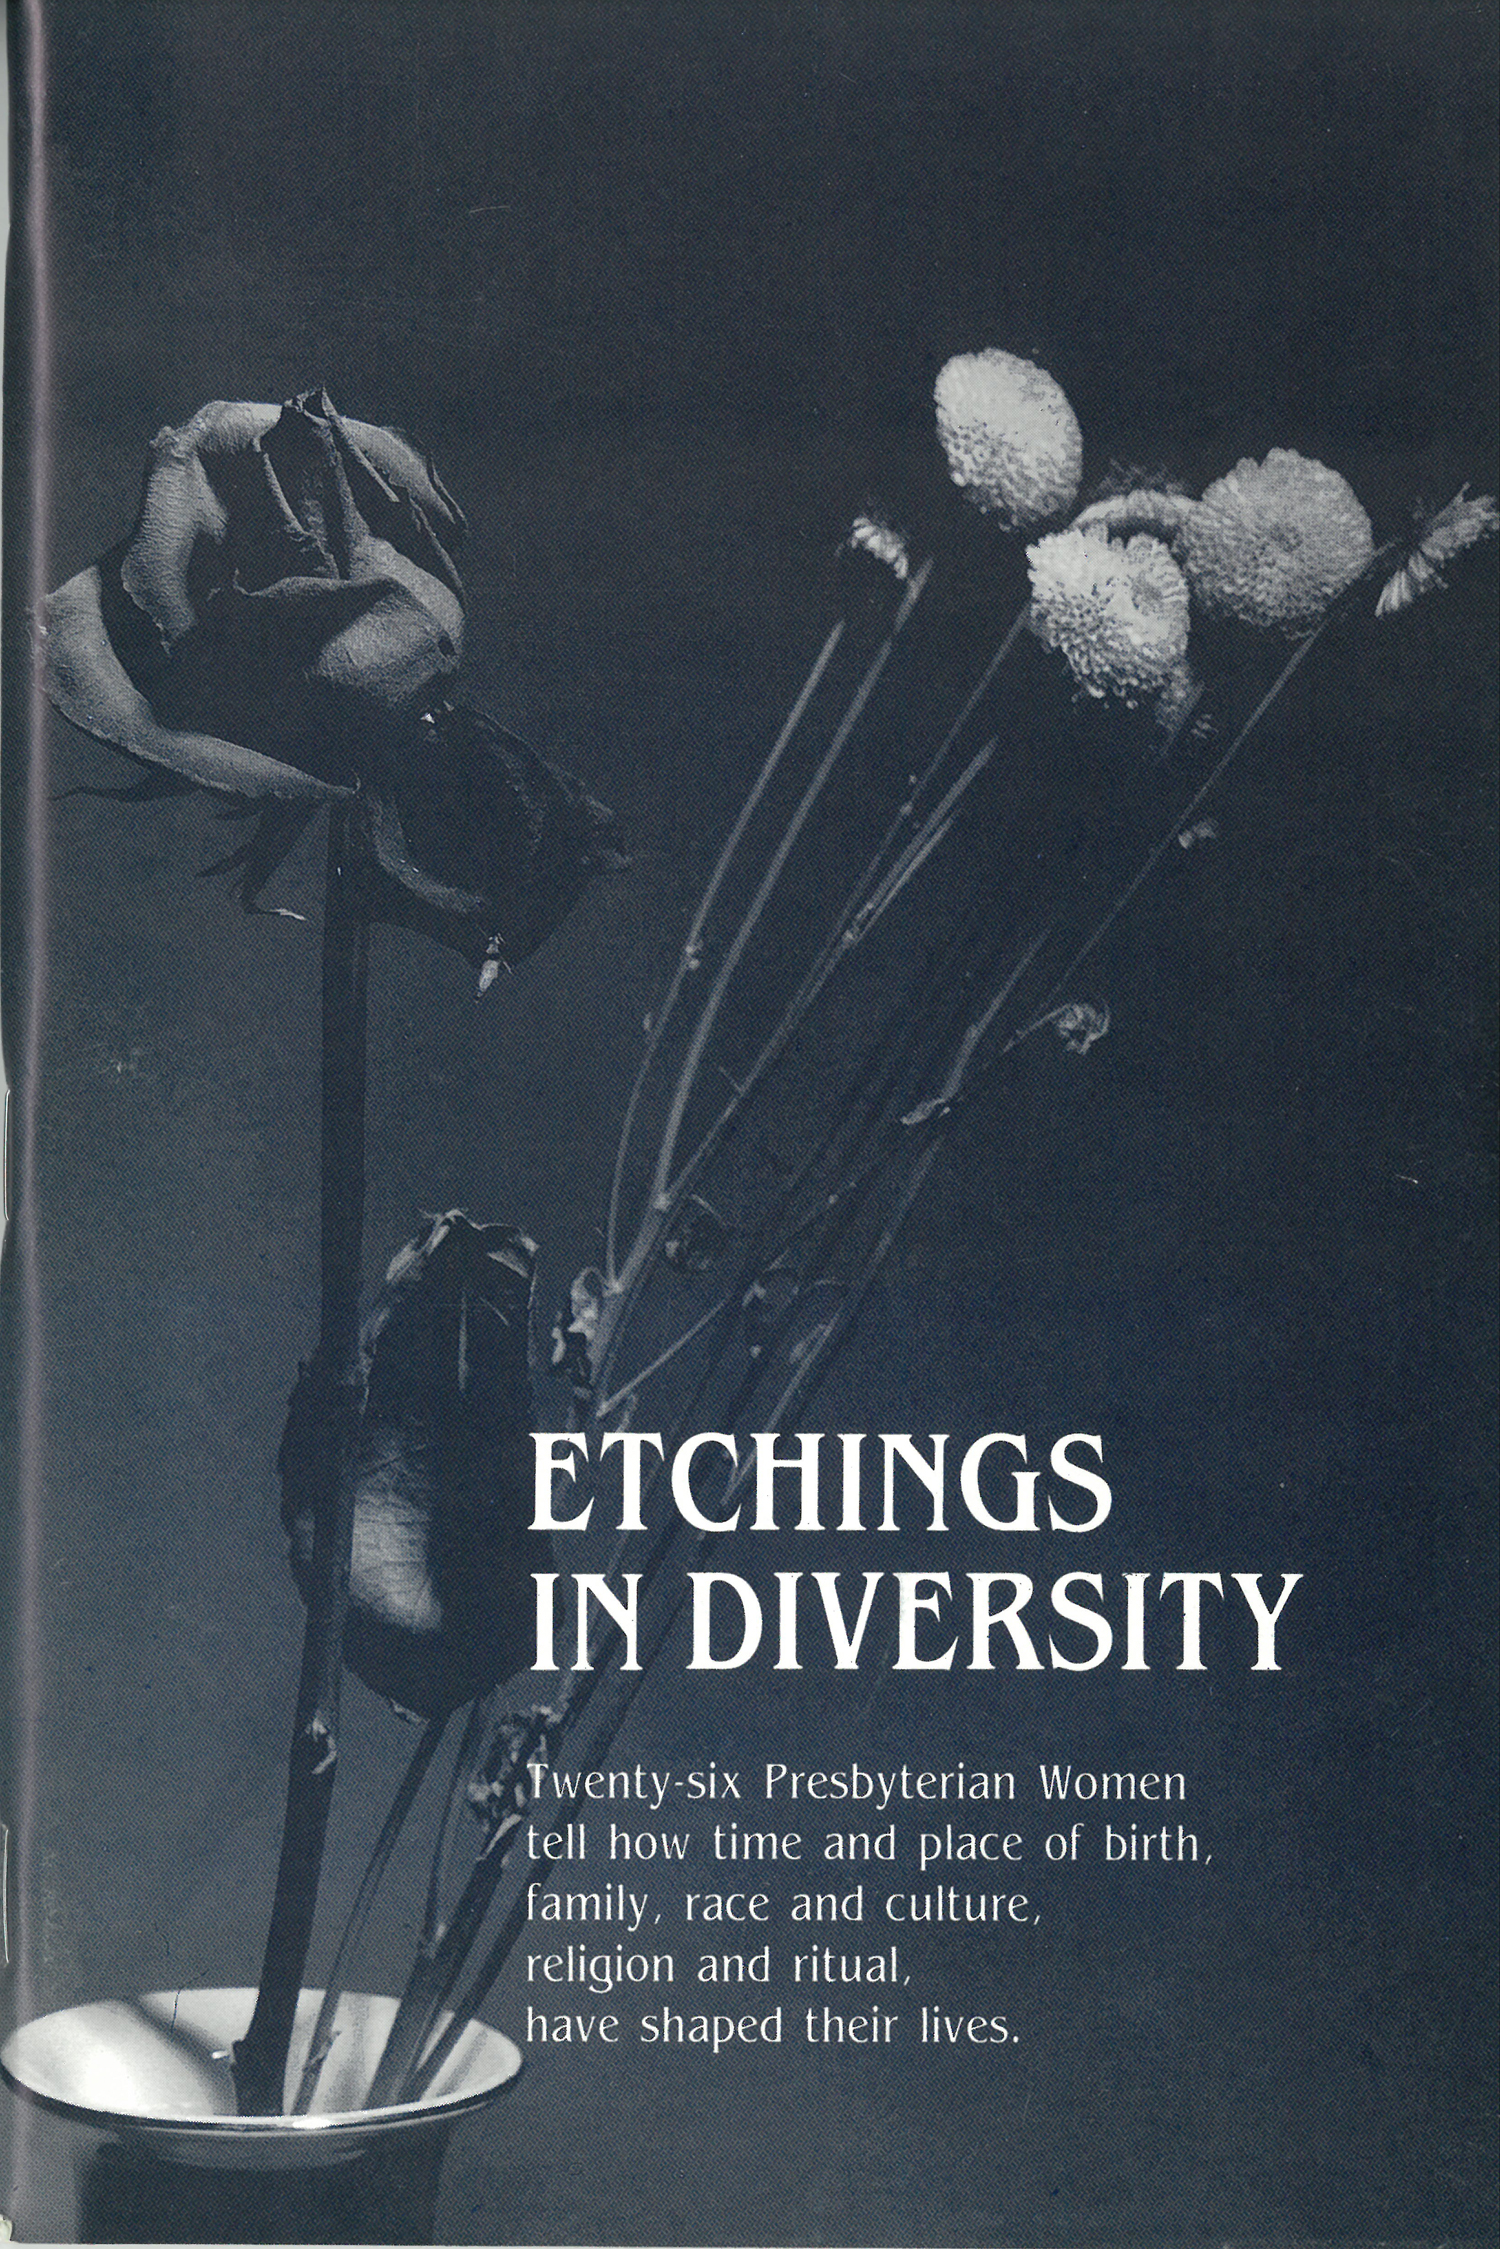 Etchings in Diversity